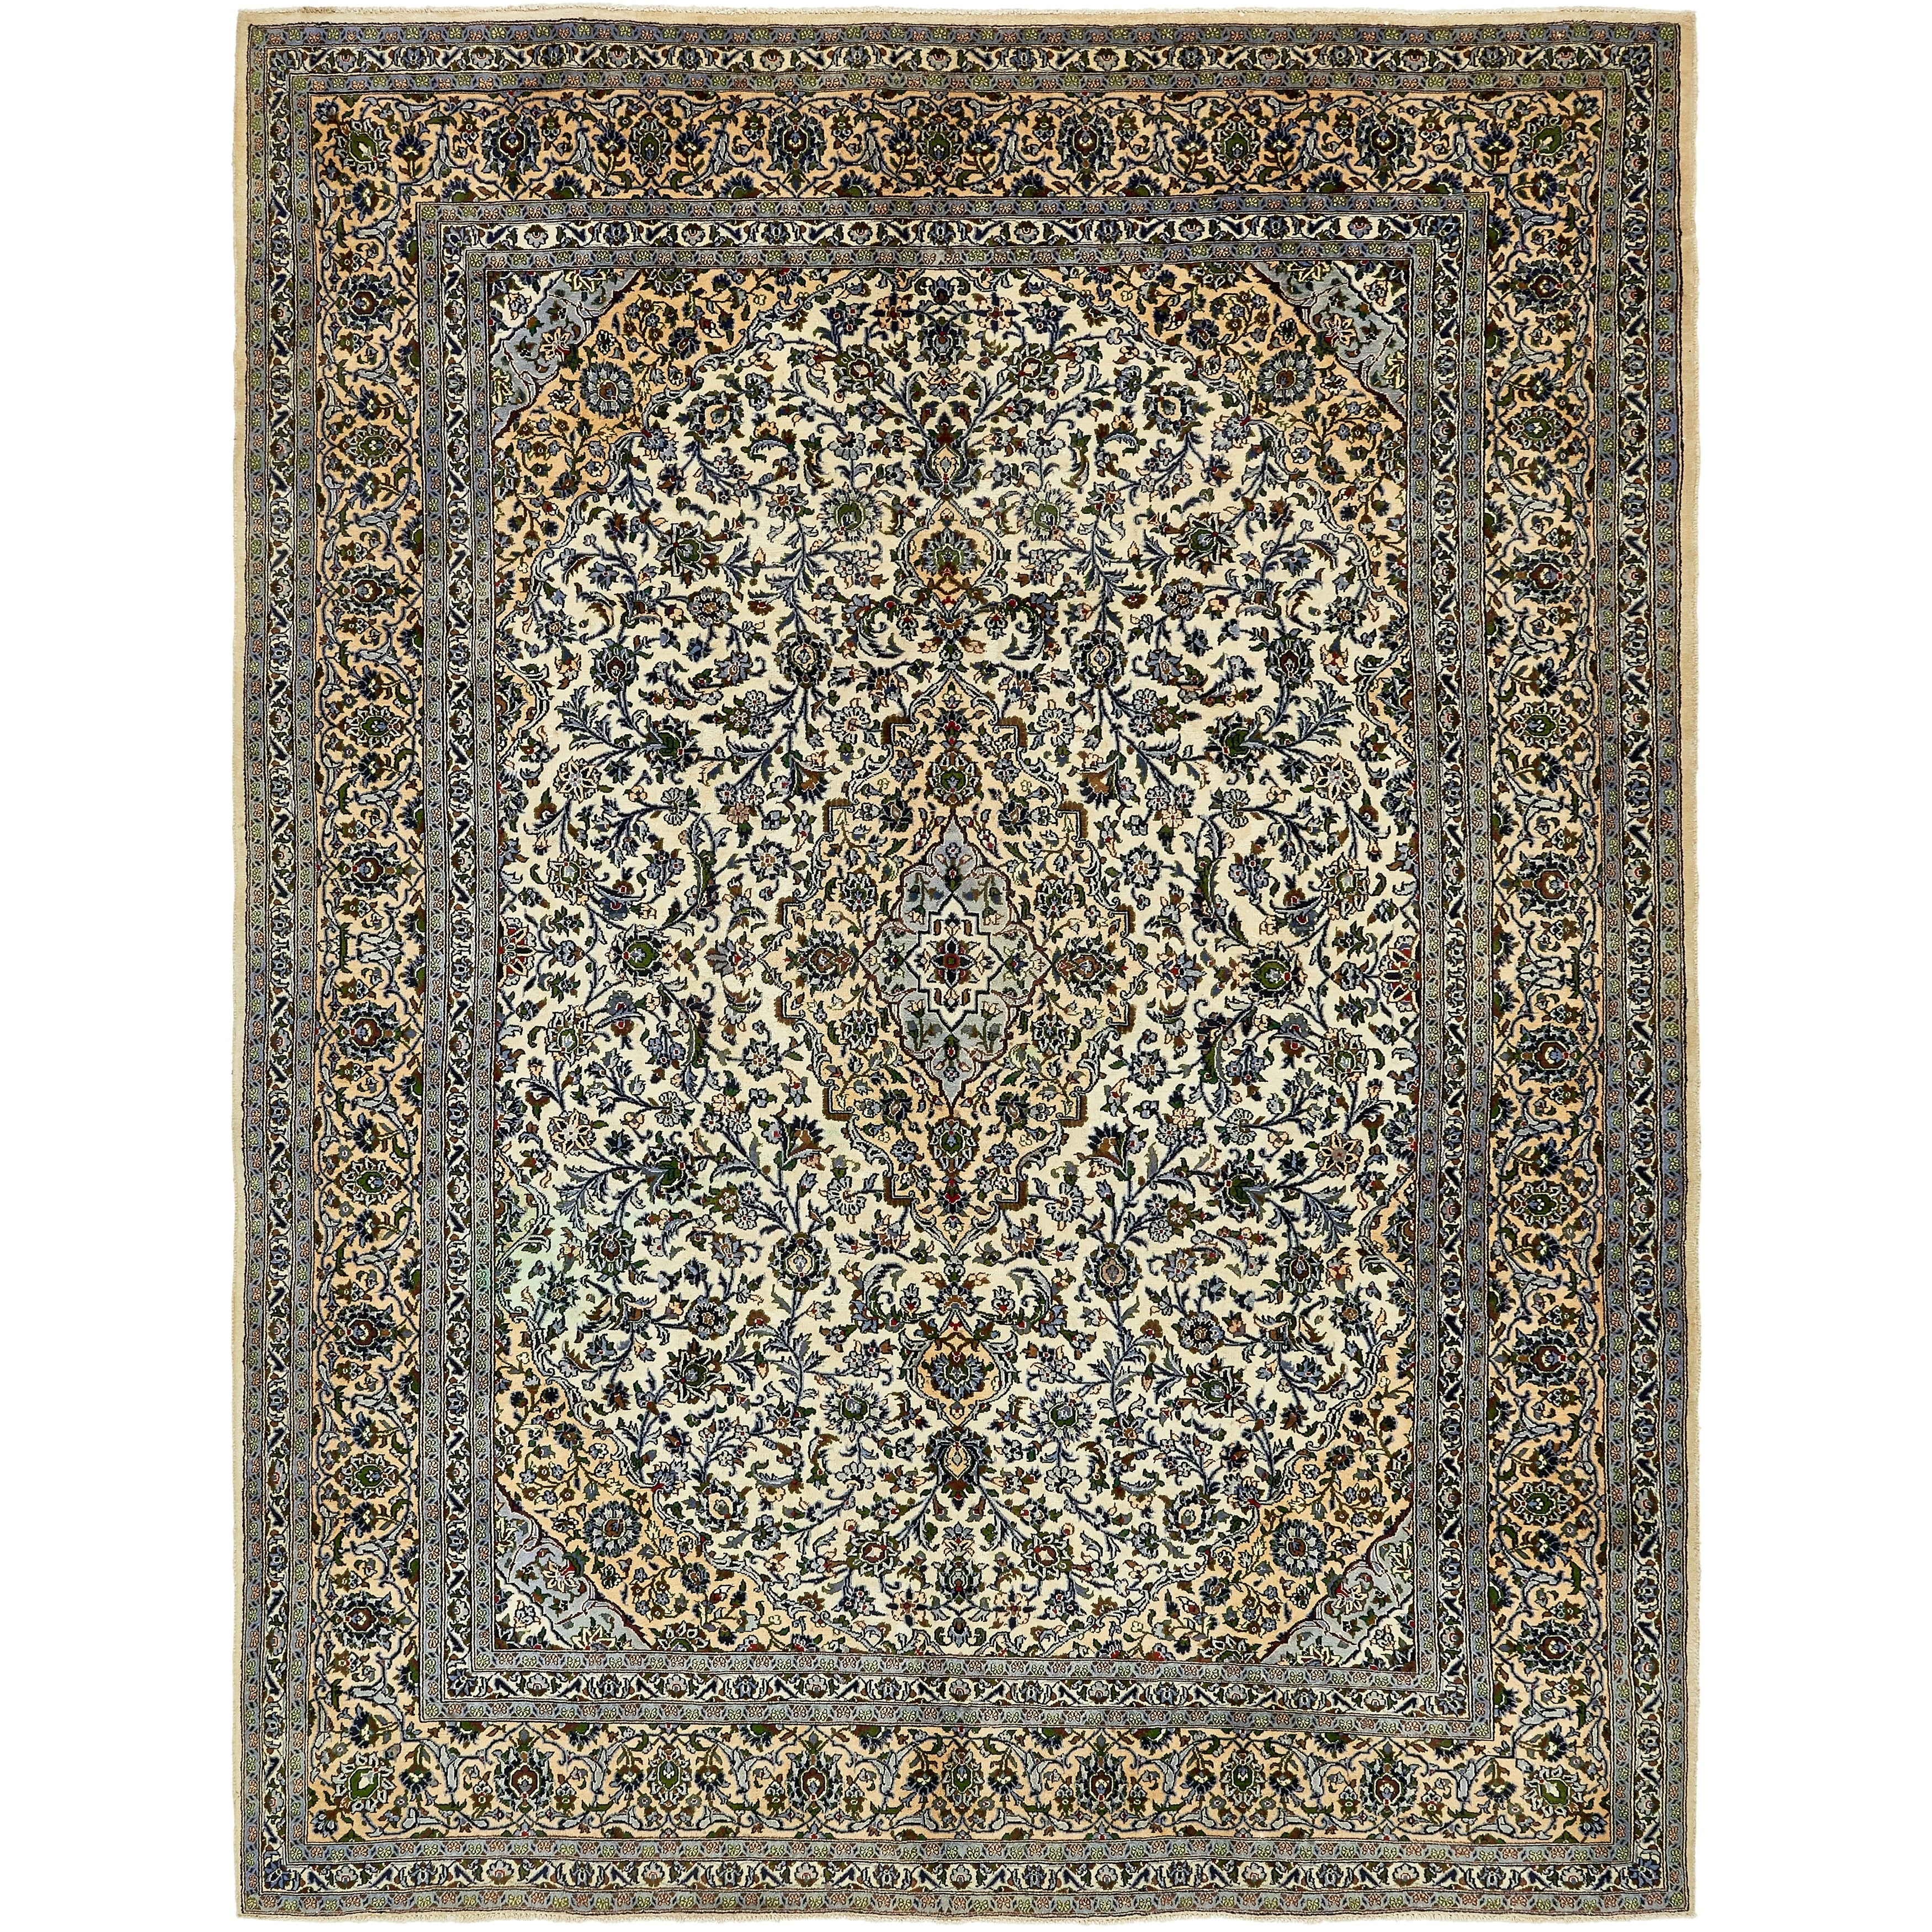 Hand Knotted Kashmar Semi Antique Wool Area Rug - 9 8 x 13 (Ivory - 9 8 x 13)